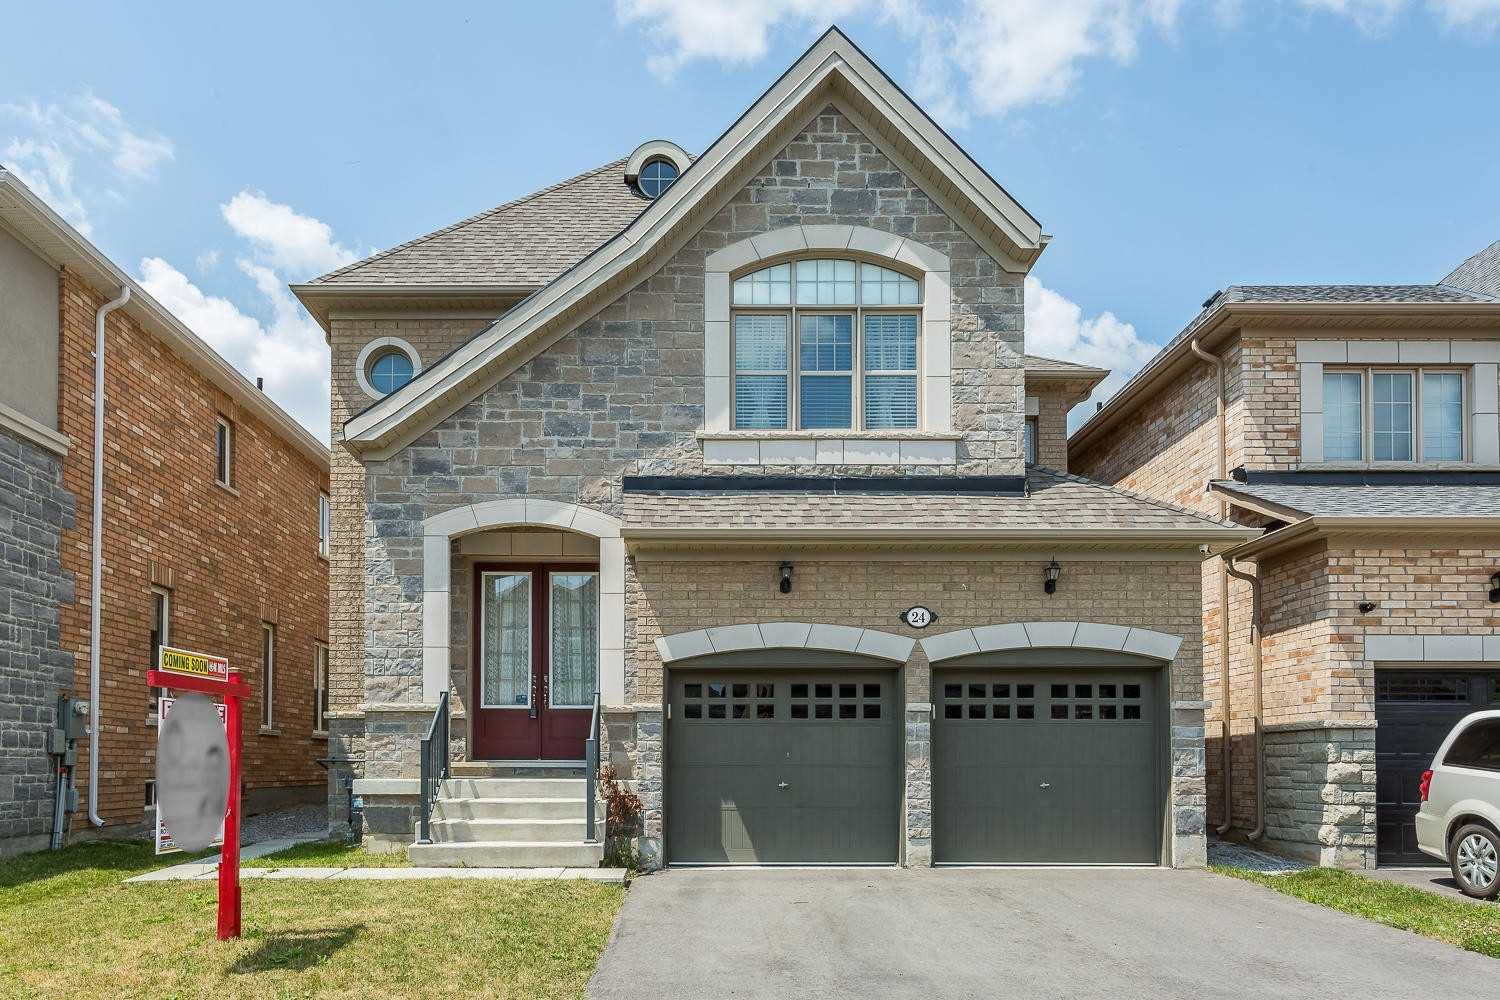 Main Photo: 24 Kempsford Crescent in Brampton: Northwest Brampton House (2-Storey) for sale : MLS®# W4529880